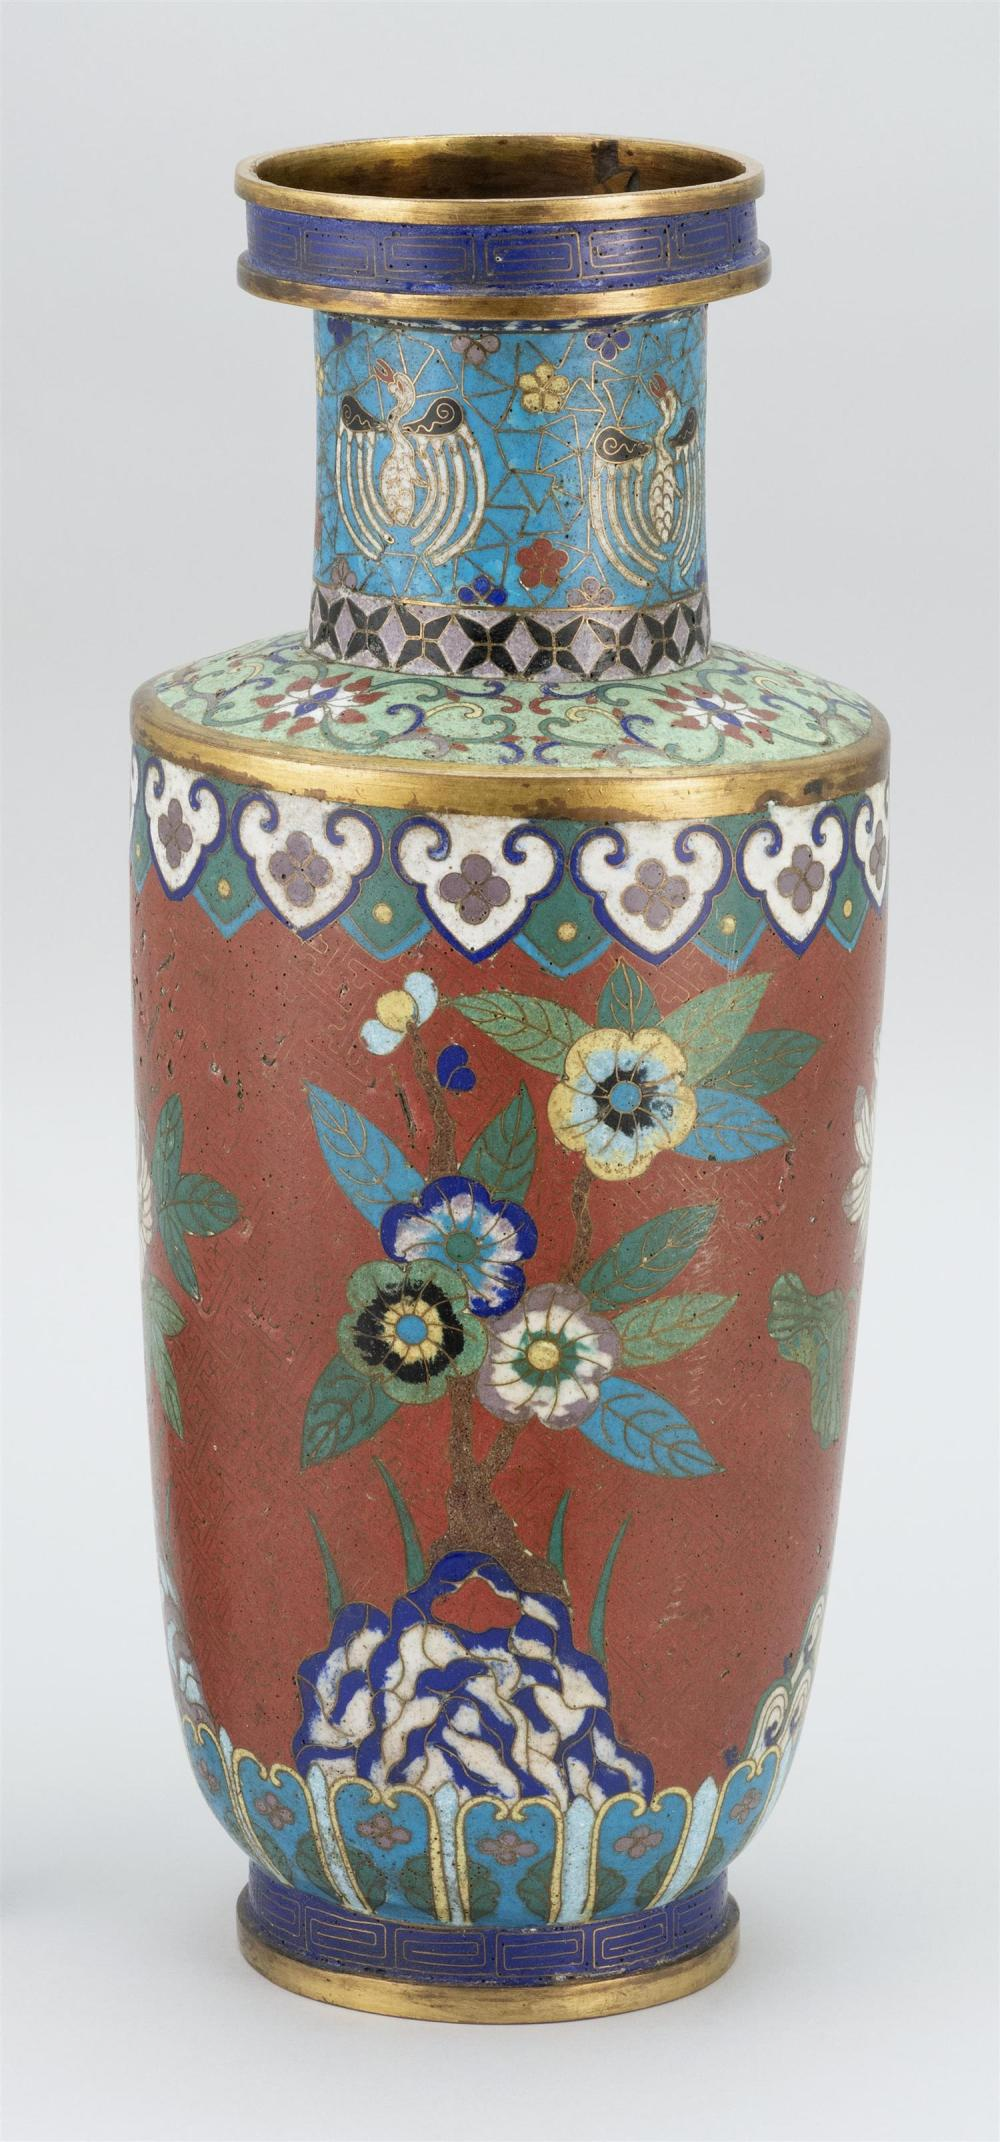 "CHINESE CLOISONNÉ VASE In rouleau form, with stylized cranes at neck and a floral design on a brick red ground. Height 17""."